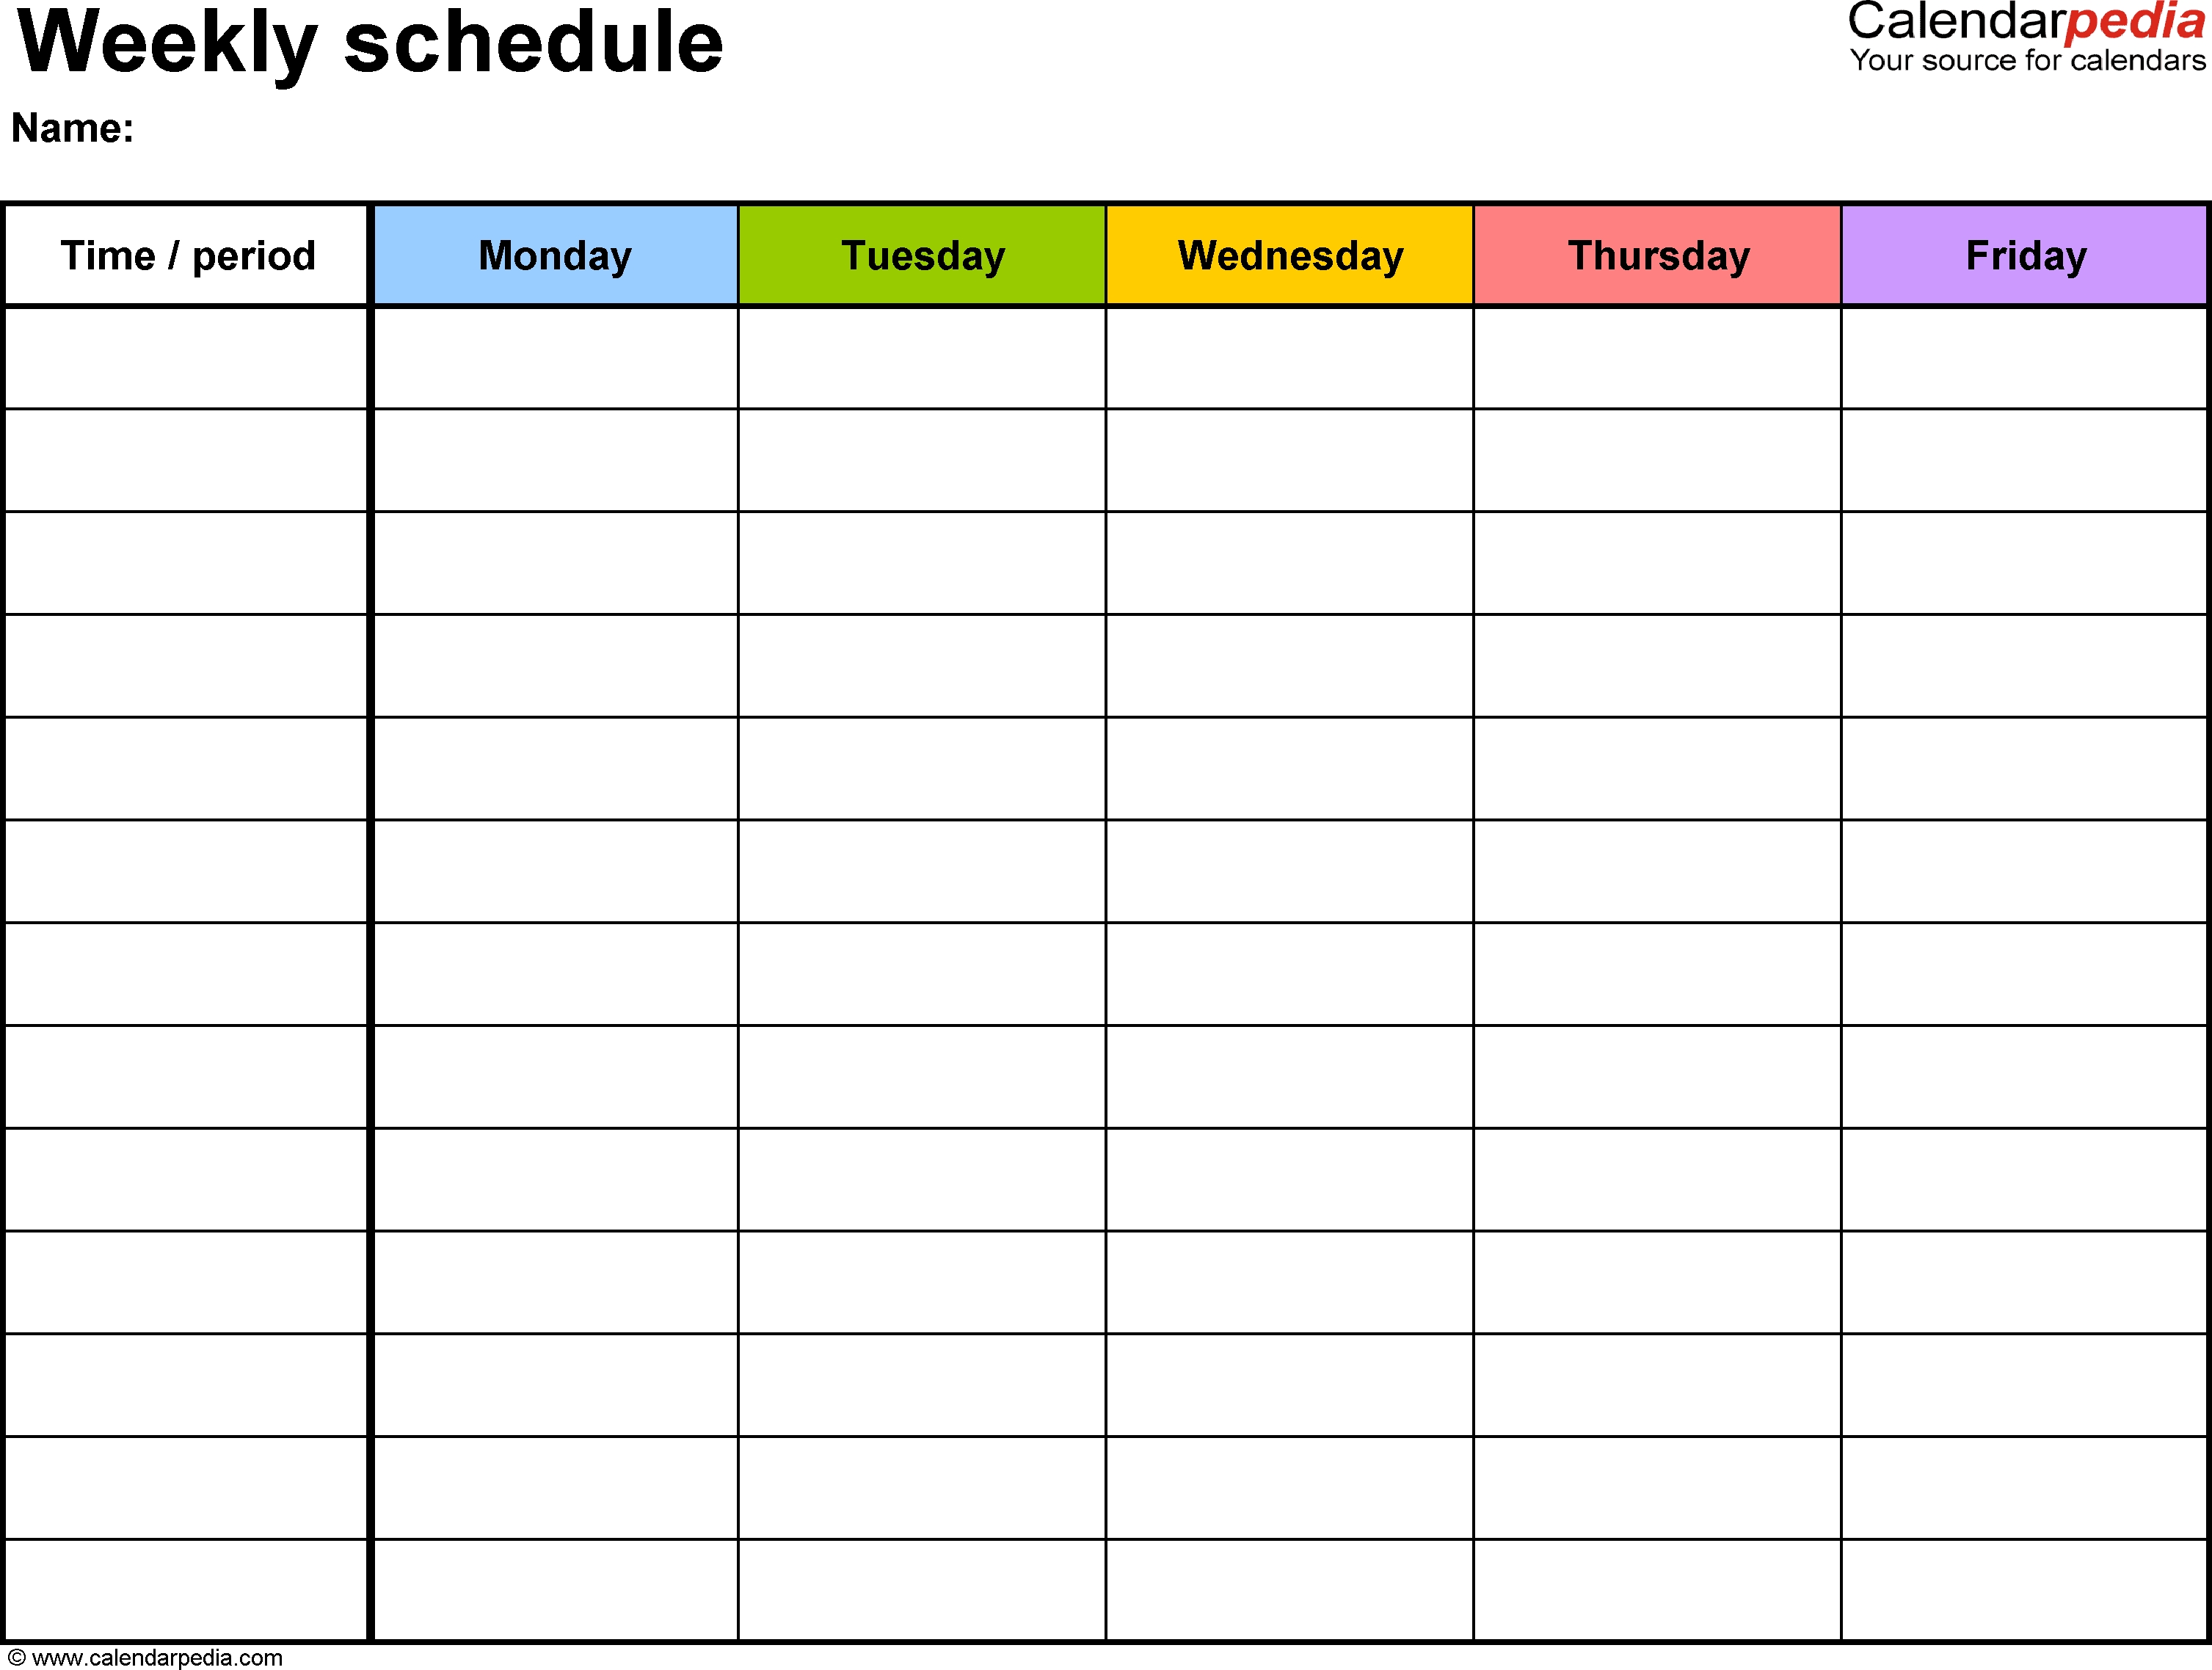 Free Weekly Schedule Templates For Word - 18 Templates regarding Printable Blank Weekly Employee Schedule